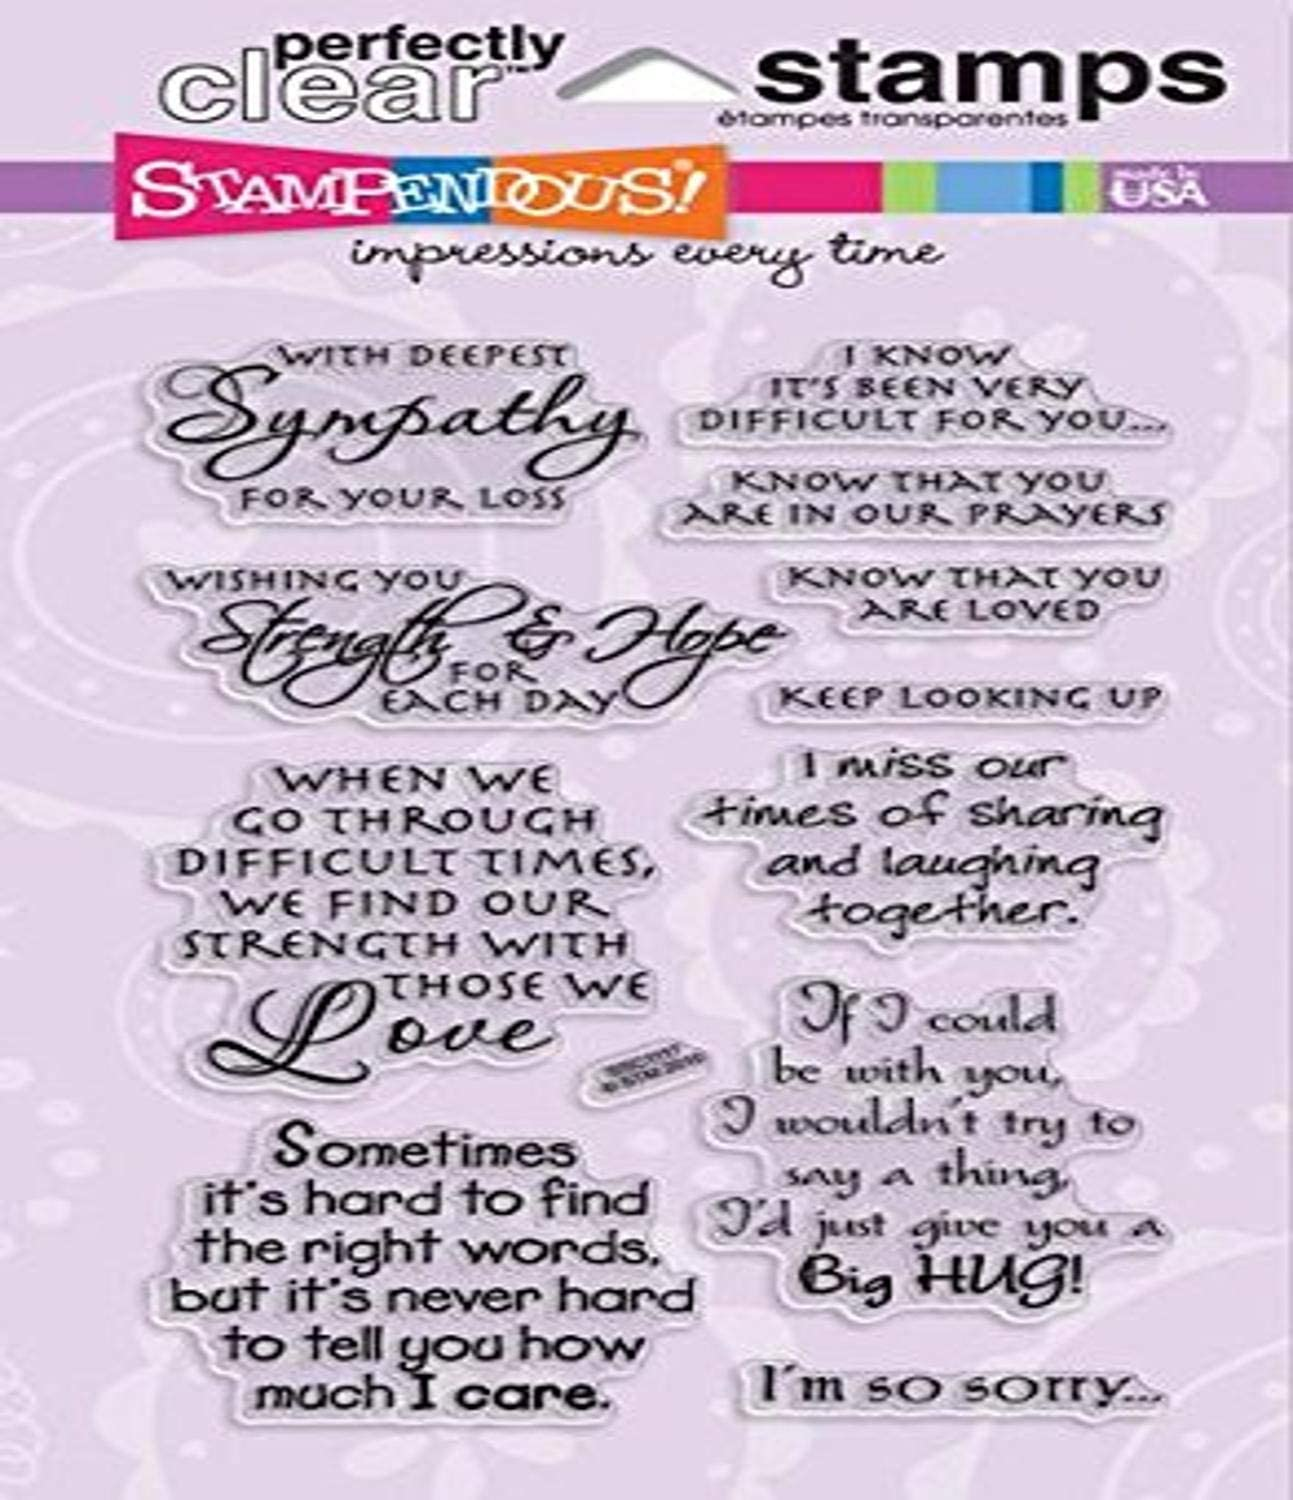 Stampendous Superlatite SSC1117 Perfectly Fashionable Clear Sincere Stamp Sentiments